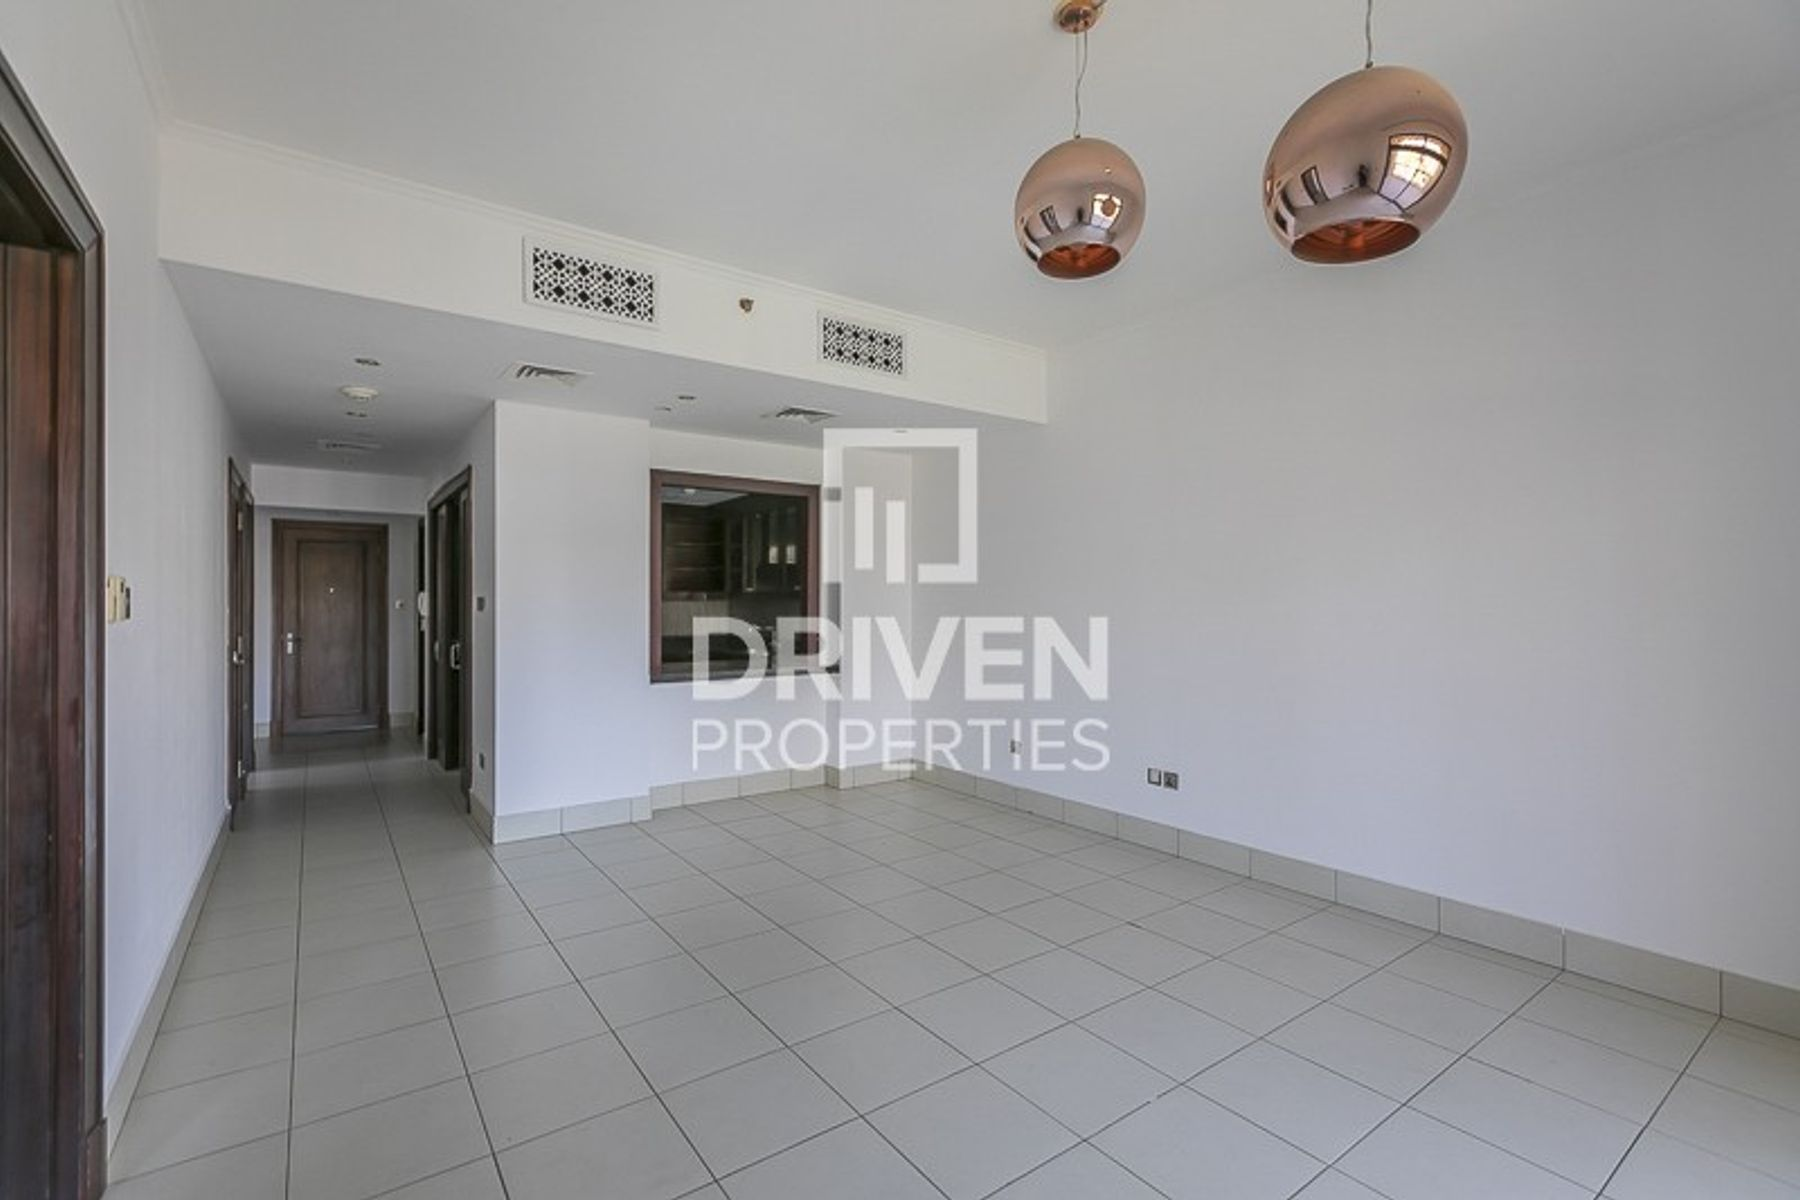 Apartment for Rent in Reehan 7 - Old Town